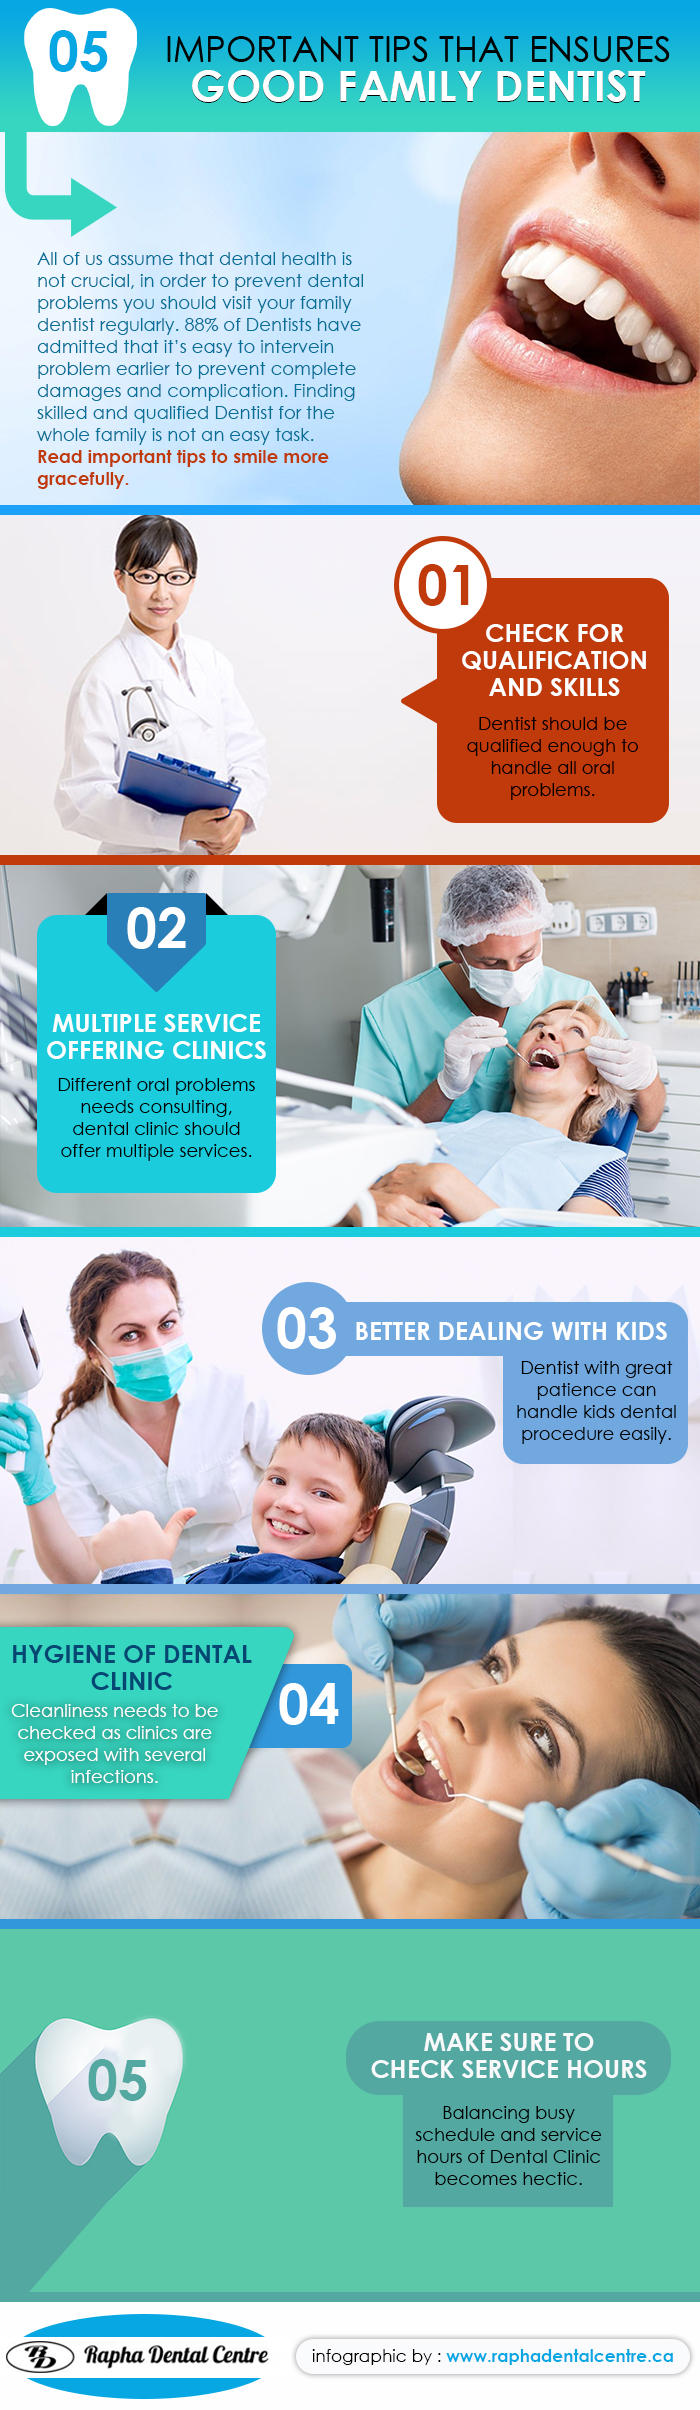 Tips to hire a good family dentist